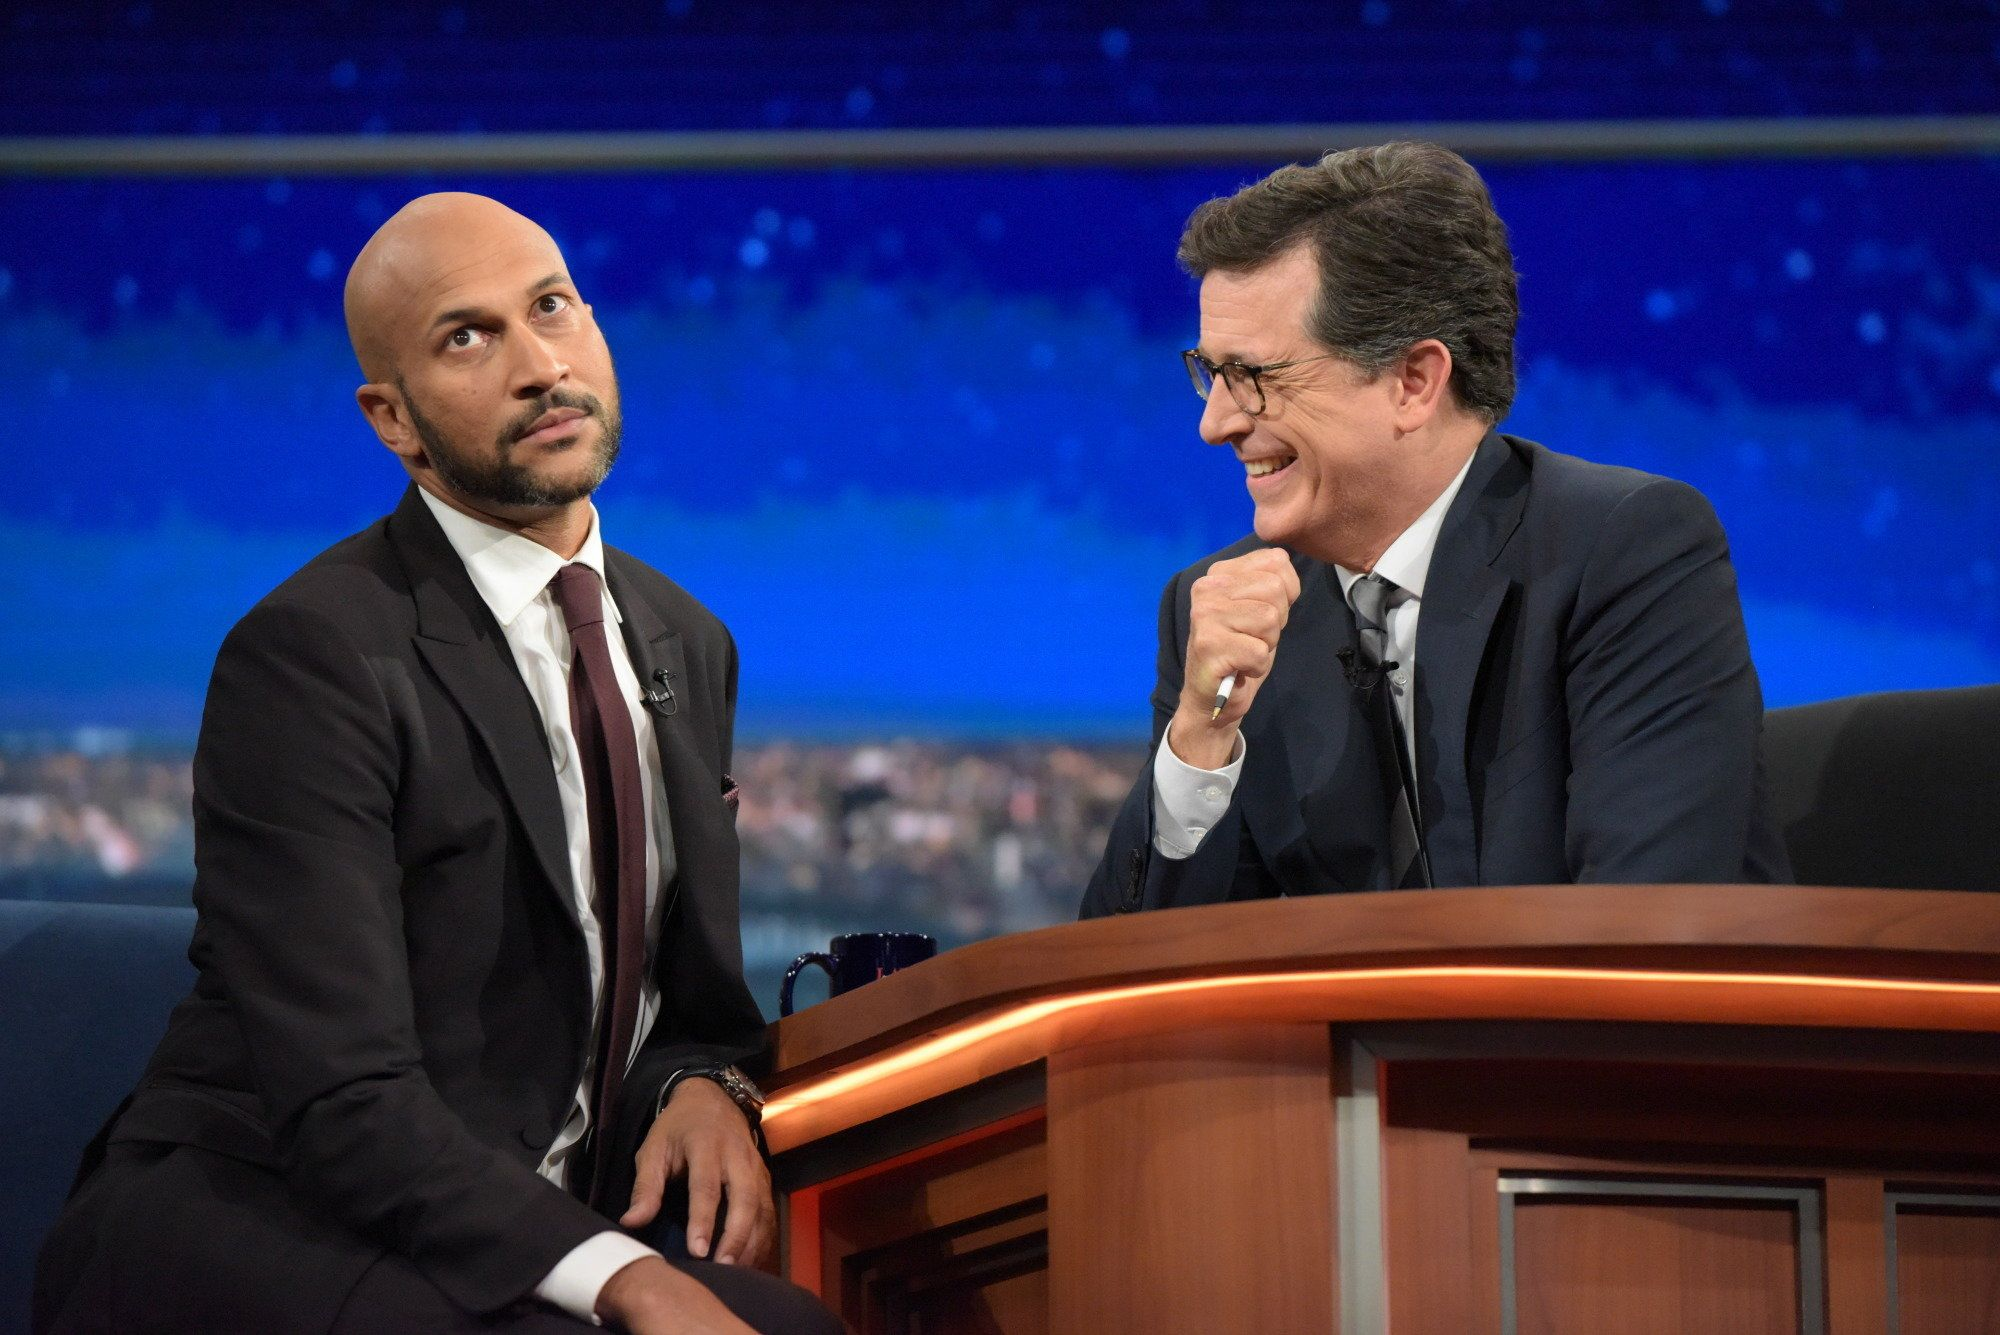 NEW YORK - JULY 19: The Late Show with Stephen Colbert airing live, Monday July 19, 2016 in New York. With  Keegan-Michael Key (Photo by Scott Kowalchyk/CBS via Getty Images)